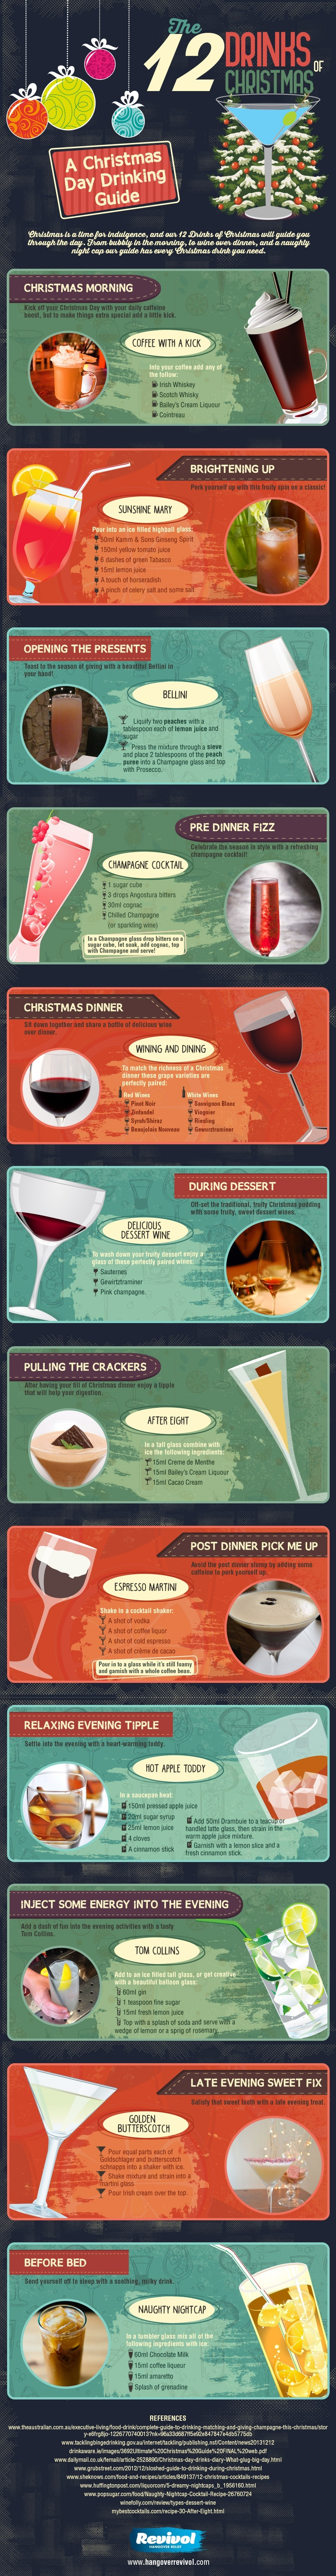 A Christmas Day Drinking Guide